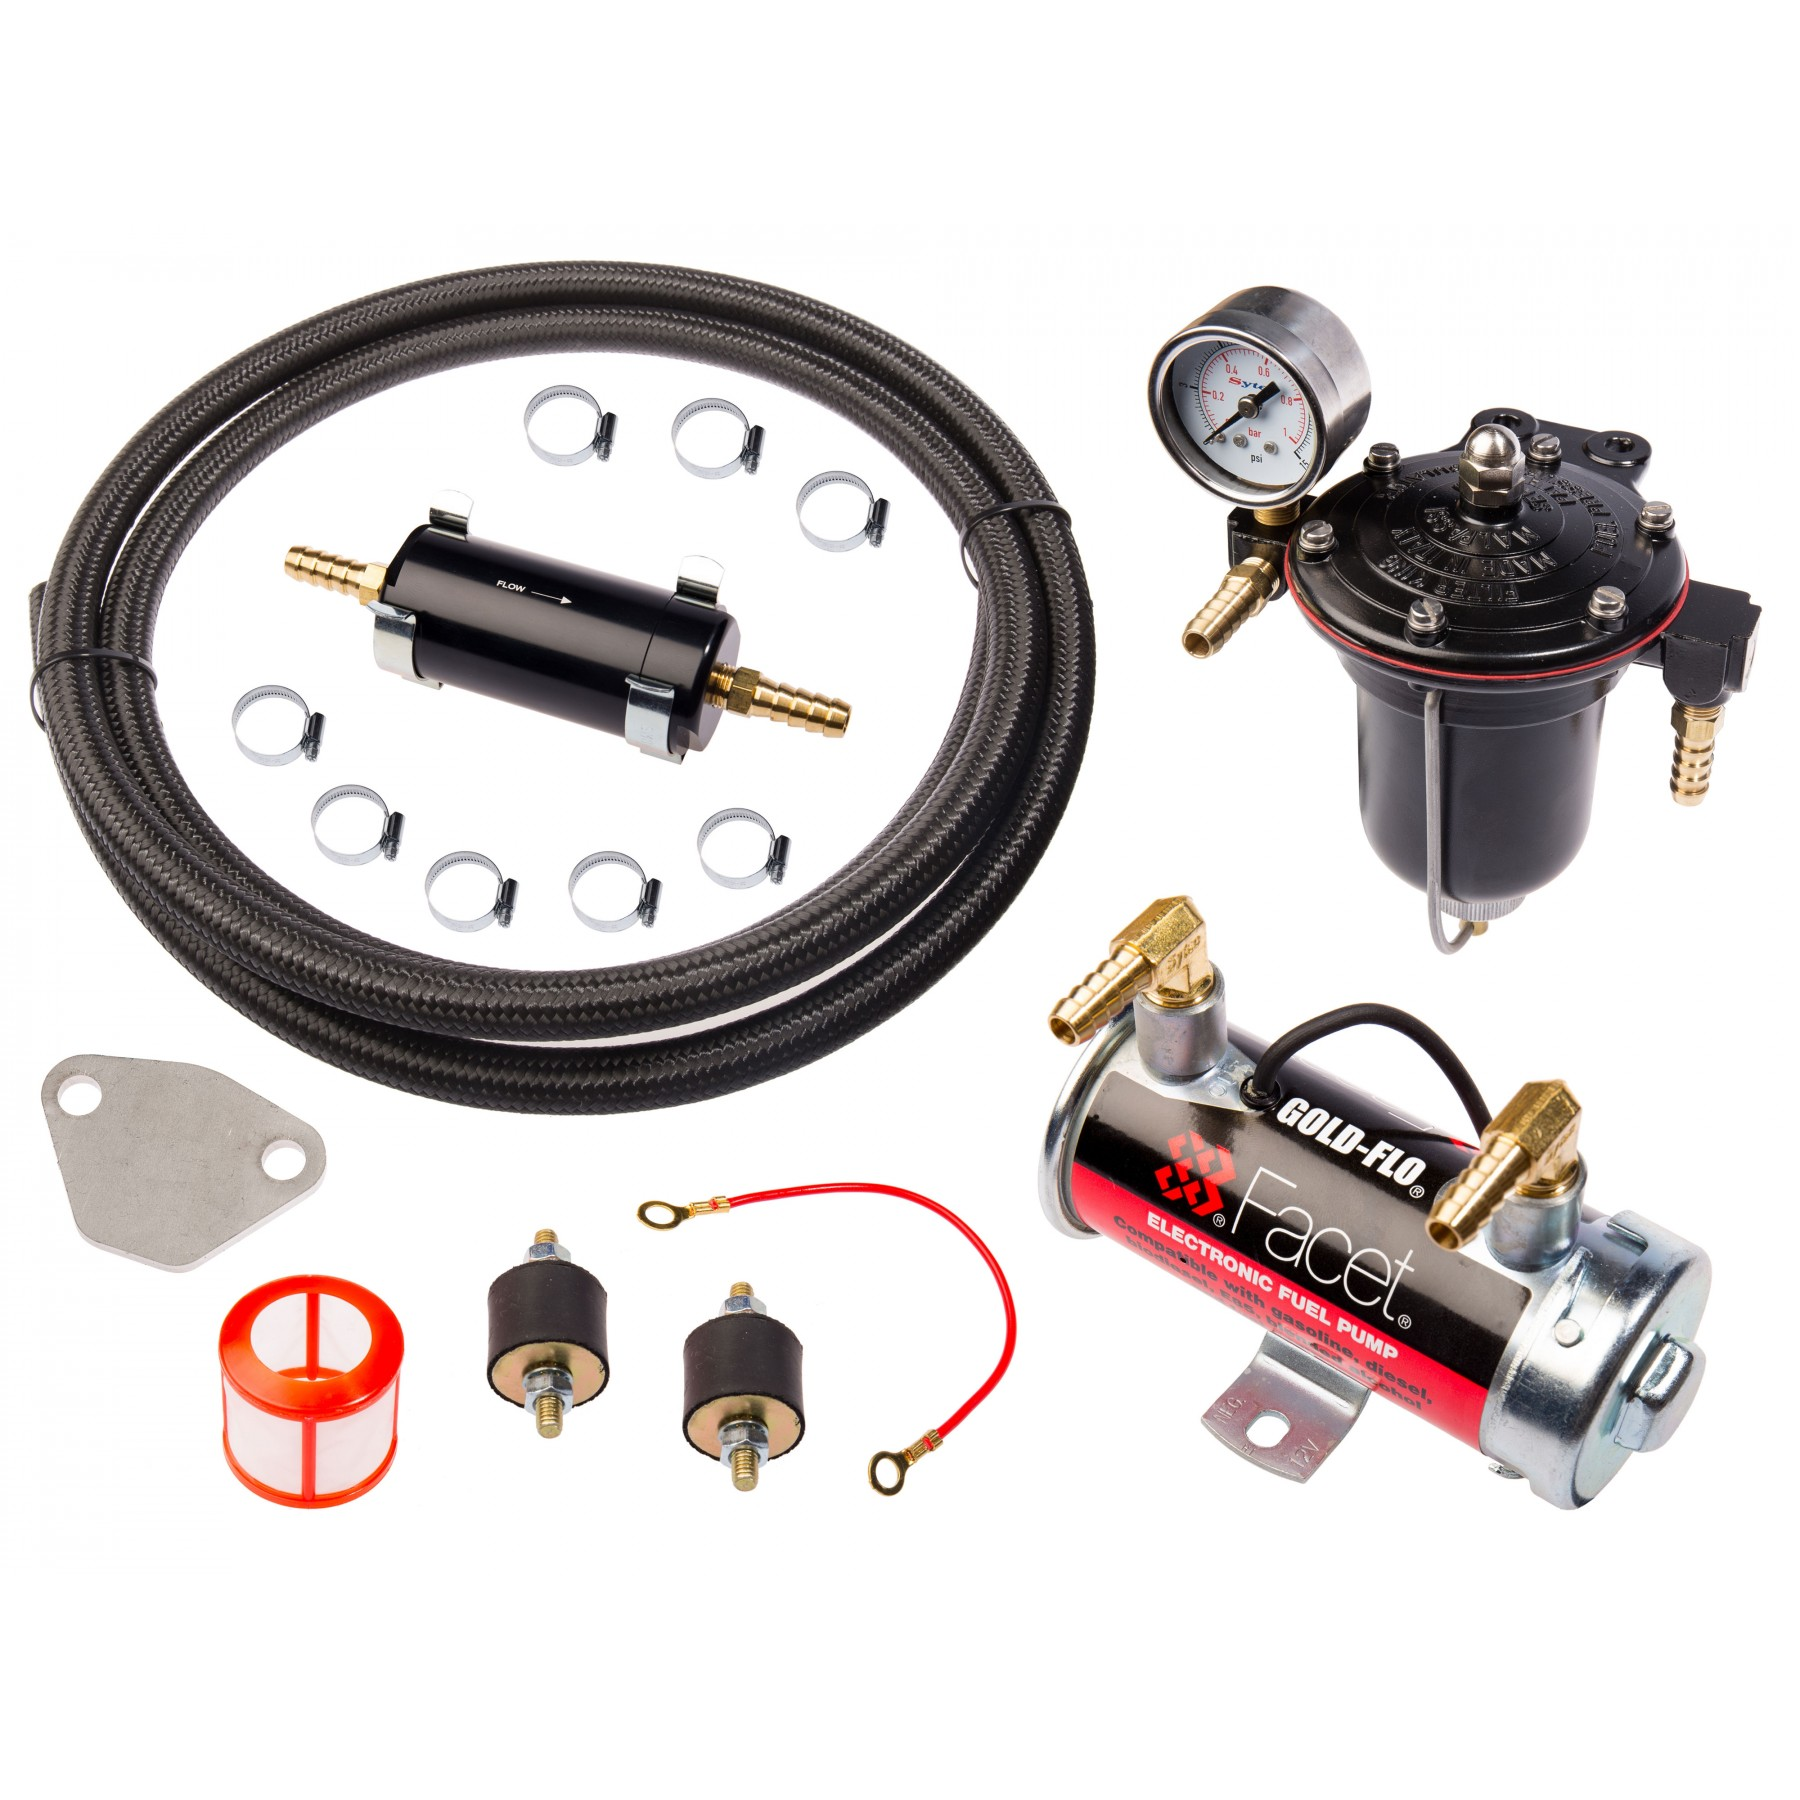 hight resolution of  med engineering ltd competition fuel system kit weber med engineering